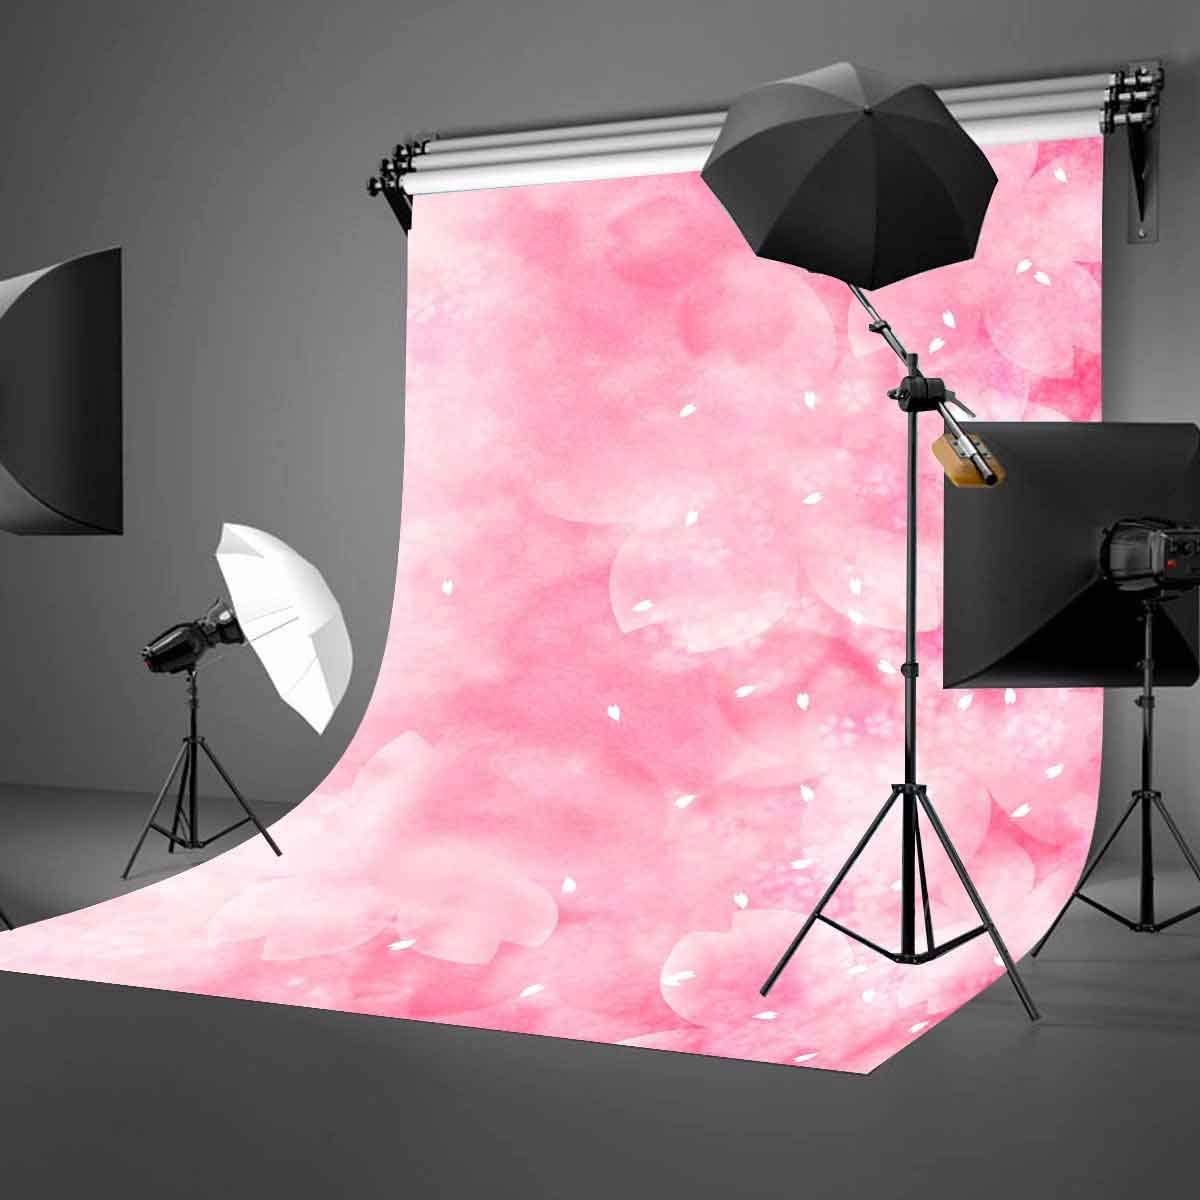 GoEoo 5X7ft Romantic Warm Backdrop Millennial Pink Flowers Blooming Photography Background Girls Children Favorite Theme Background Shooting Props LYGE561